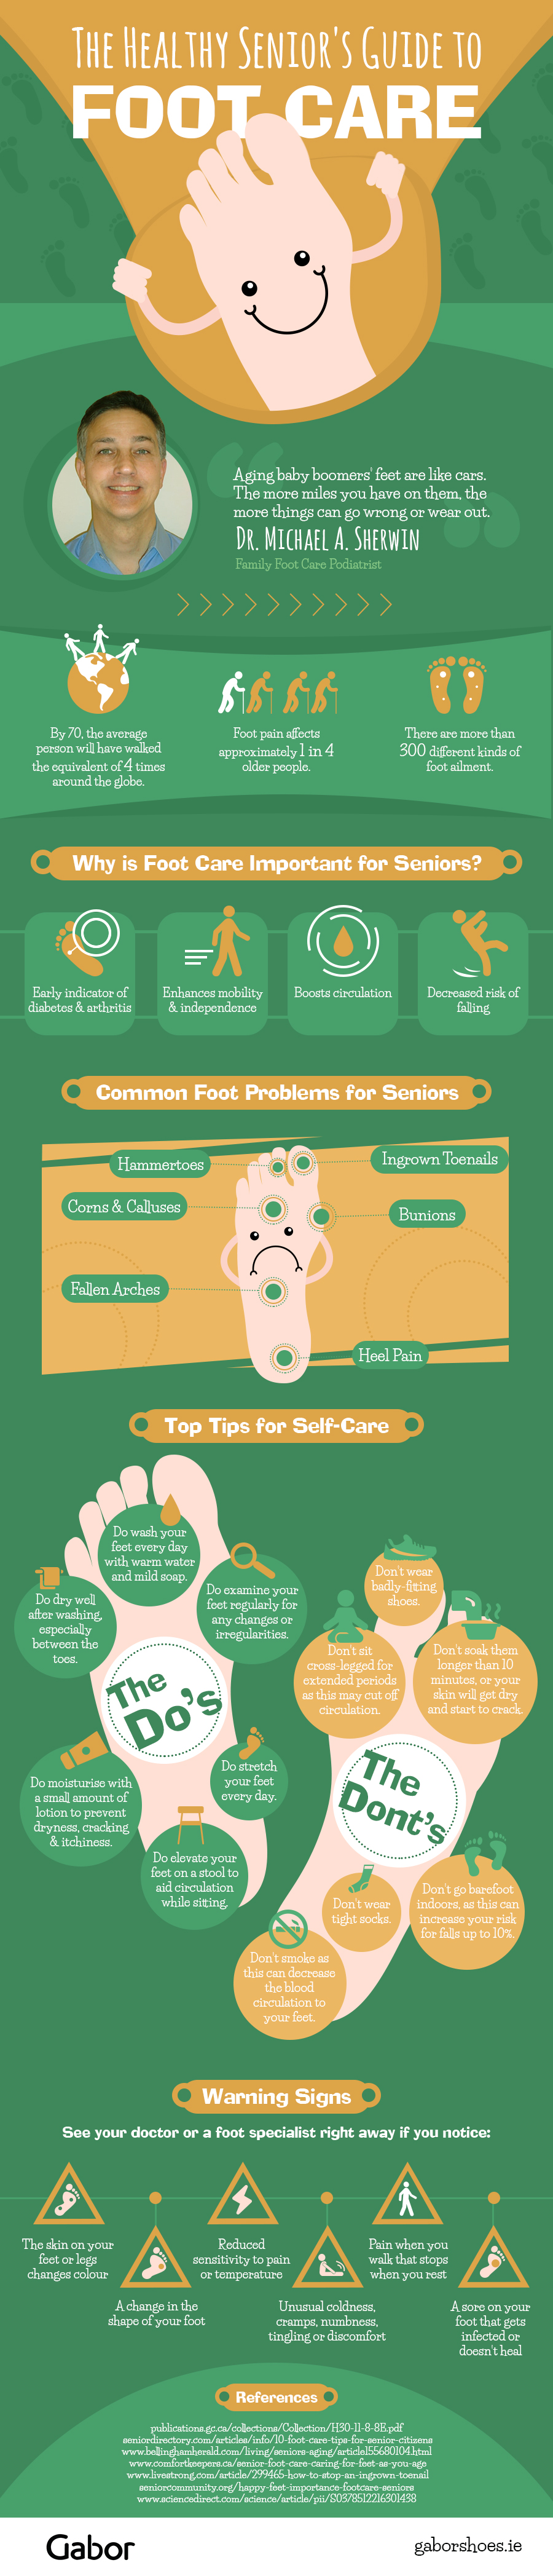 The Healthy Senior's Guide to Foot Care